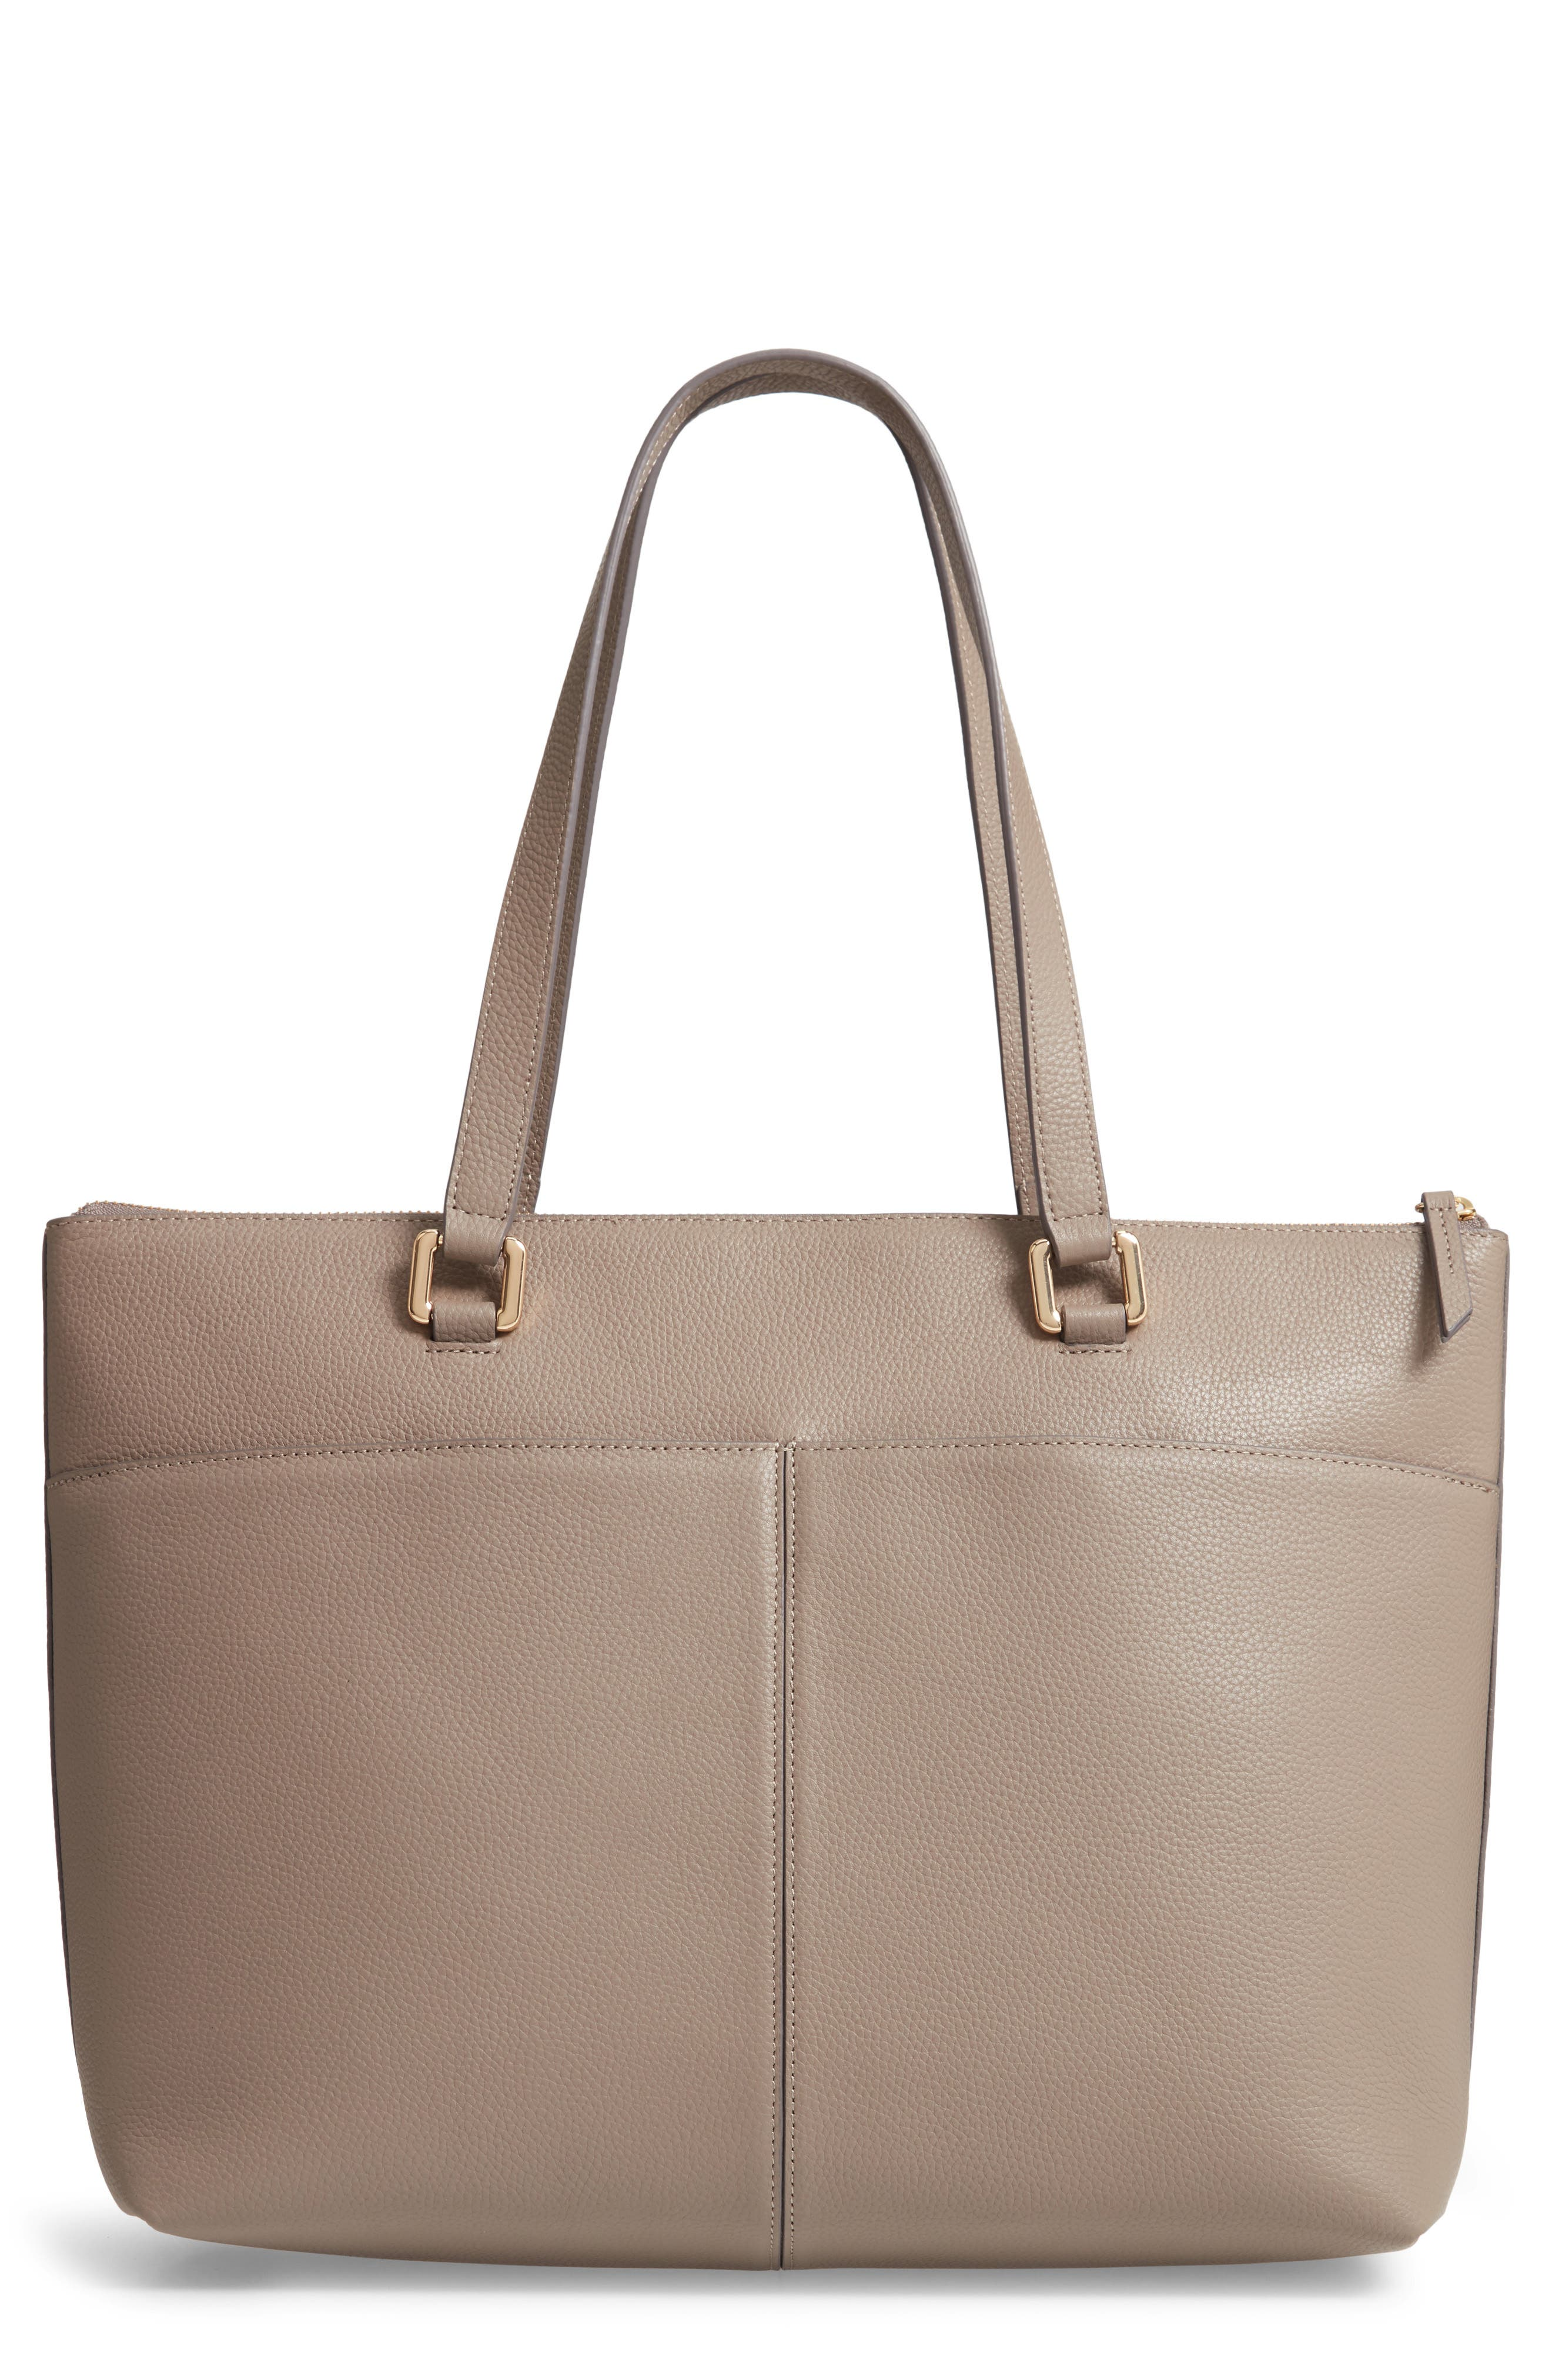 NORDSTROM, Lexa Pebbled Leather Tote, Main thumbnail 1, color, GREY TAUPE